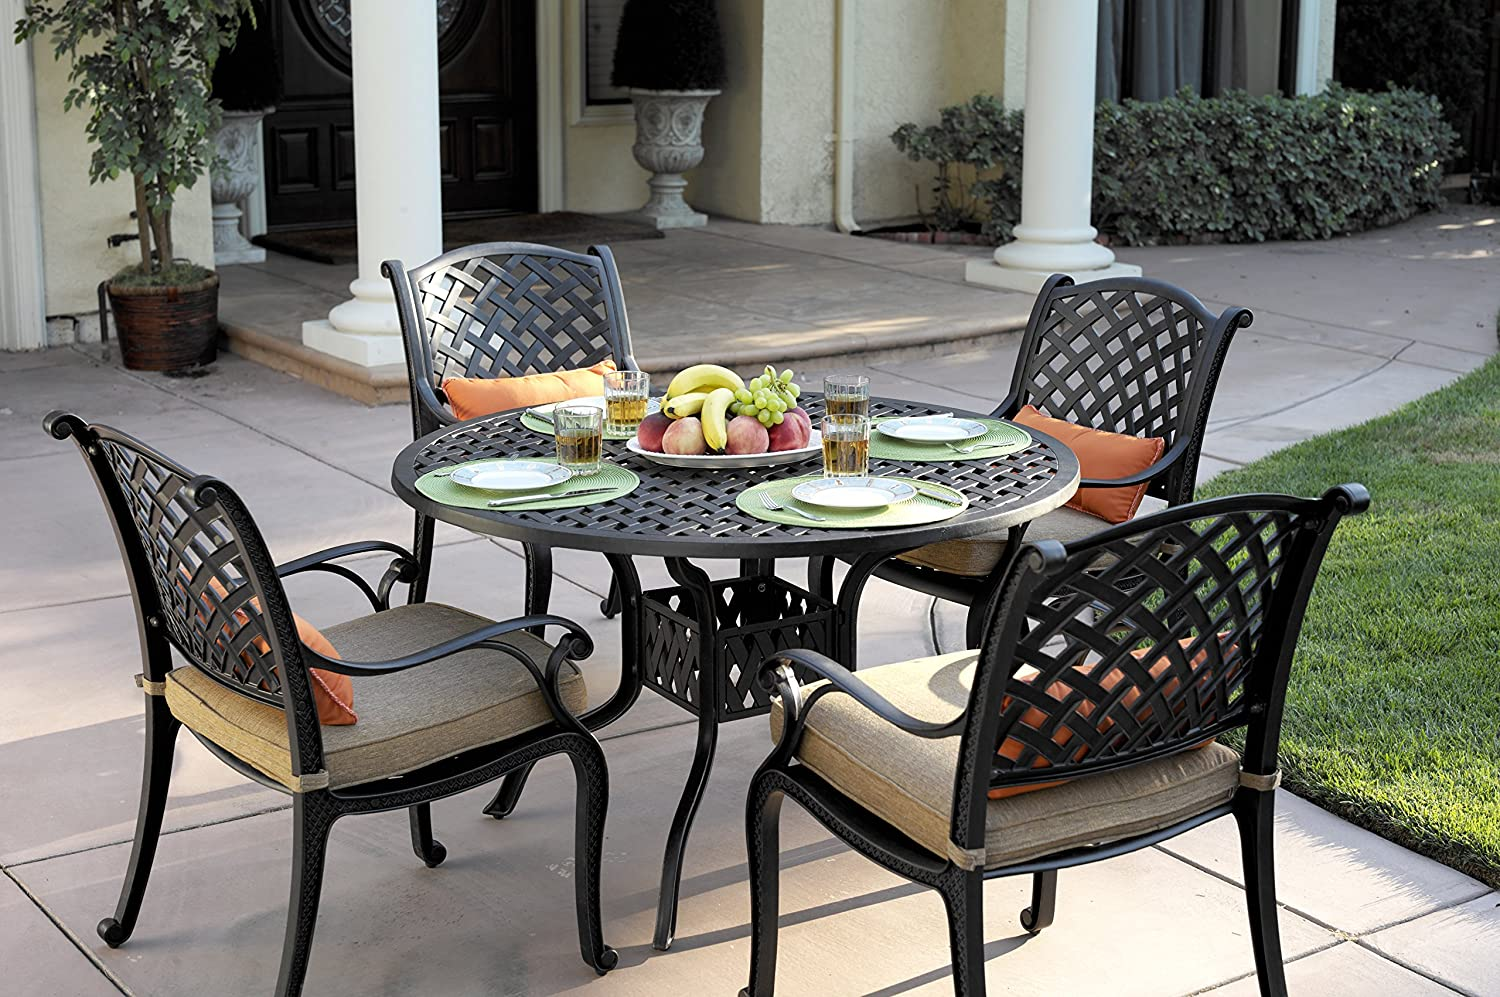 amazoncom darlee nassau cast aluminum 5piece dining set with seat cushions and 48inch round dining table antique bronze finish patio lawn u0026 garden